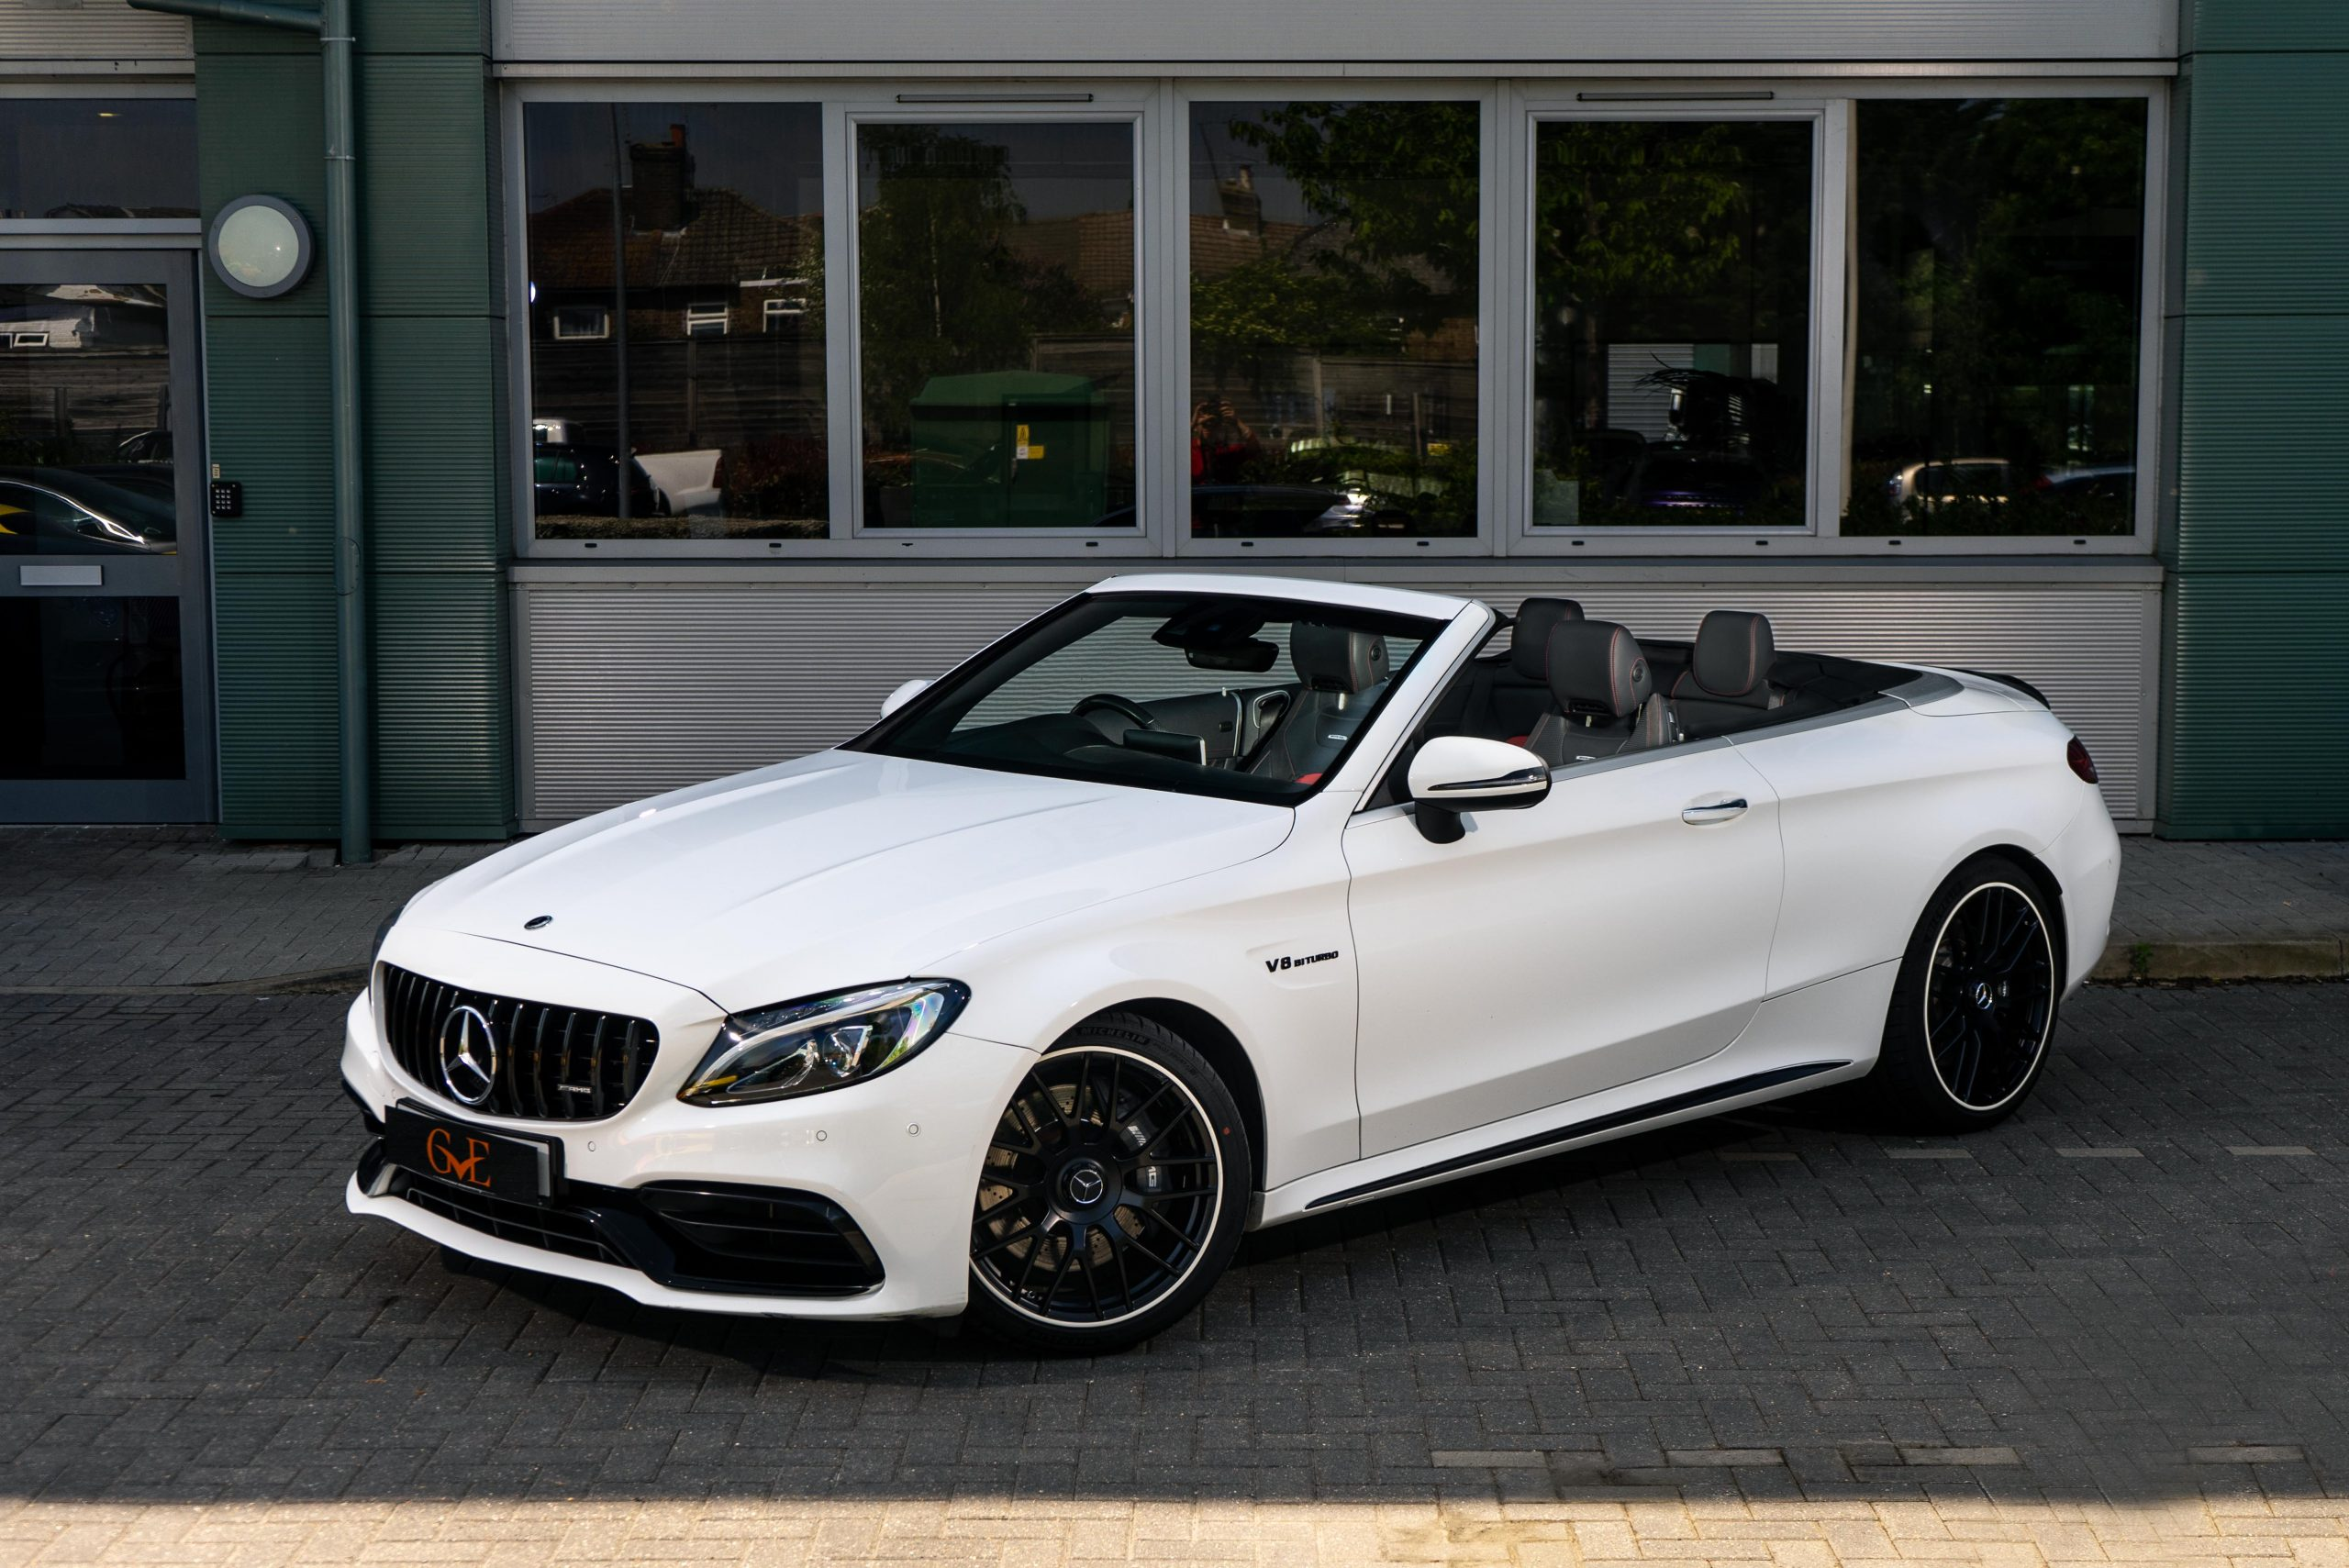 Mercedes Benz C63 AMG Convertible | West London Supercar Dealership